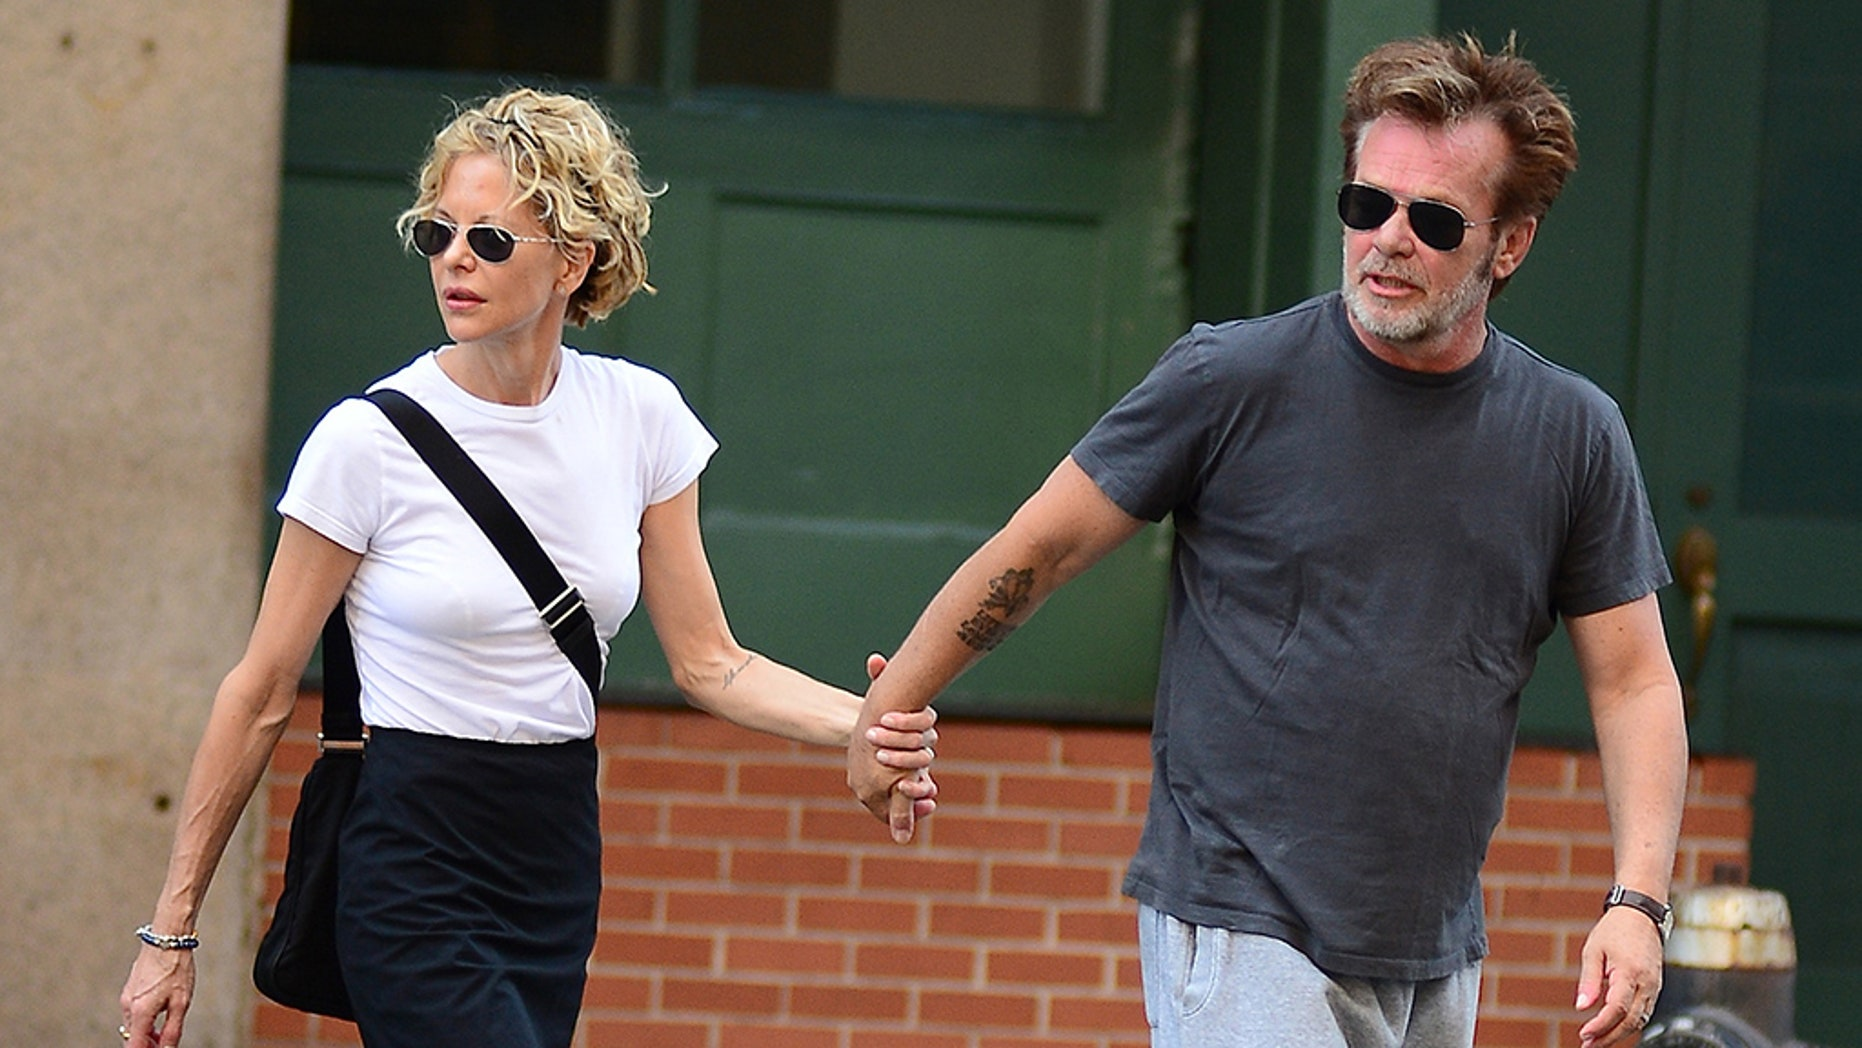 Meg Ryan Announces Engagement to John Mellencamp With Hilarious Drawing